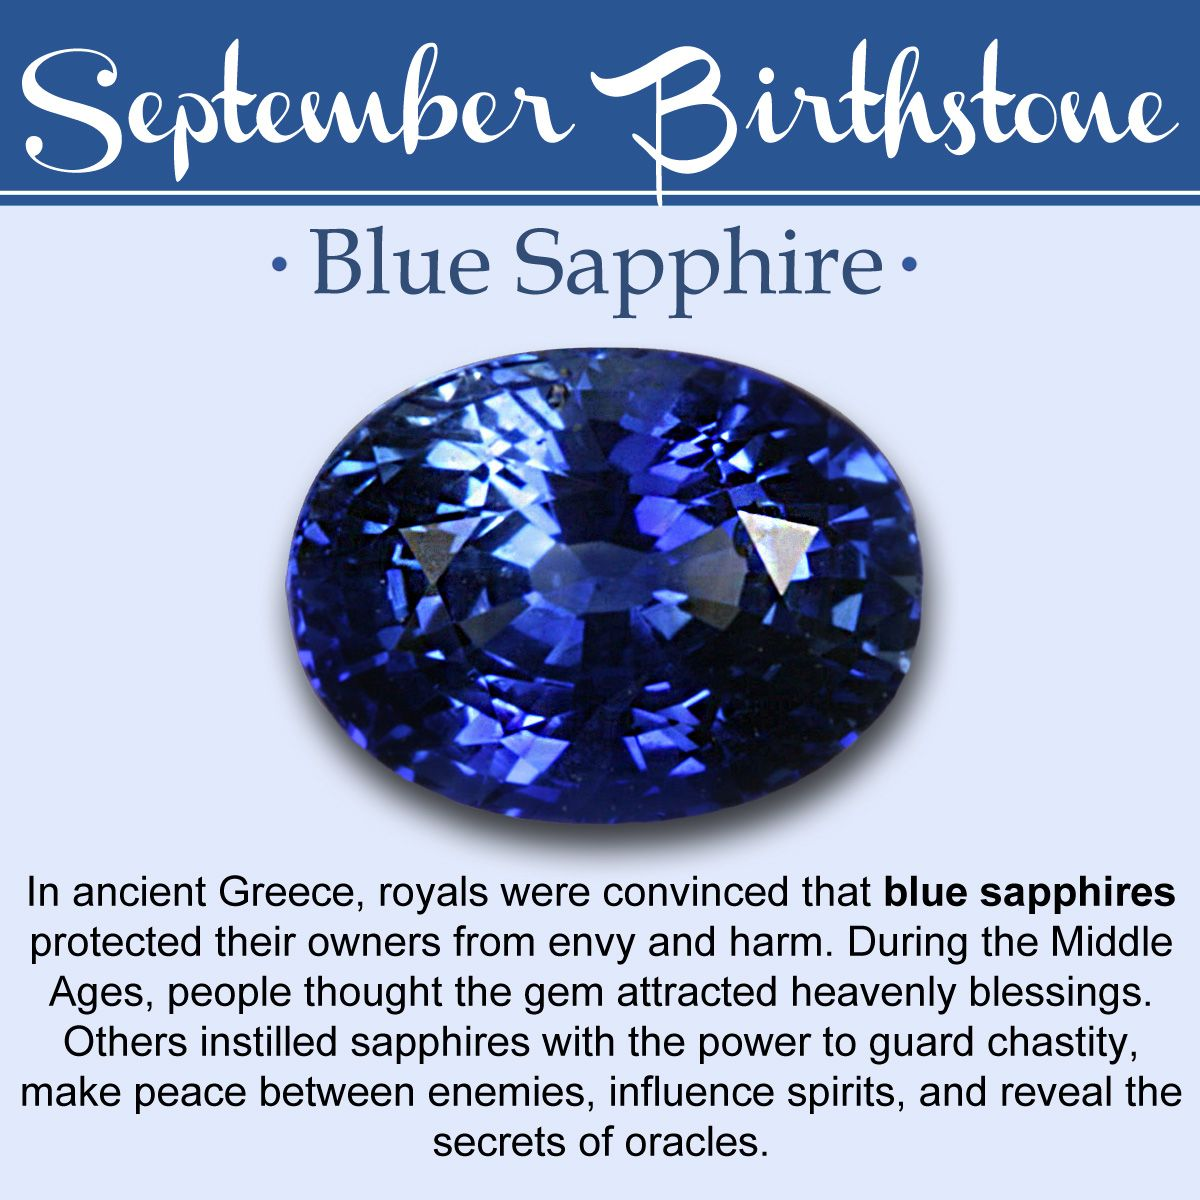 September Birthstone Meaning